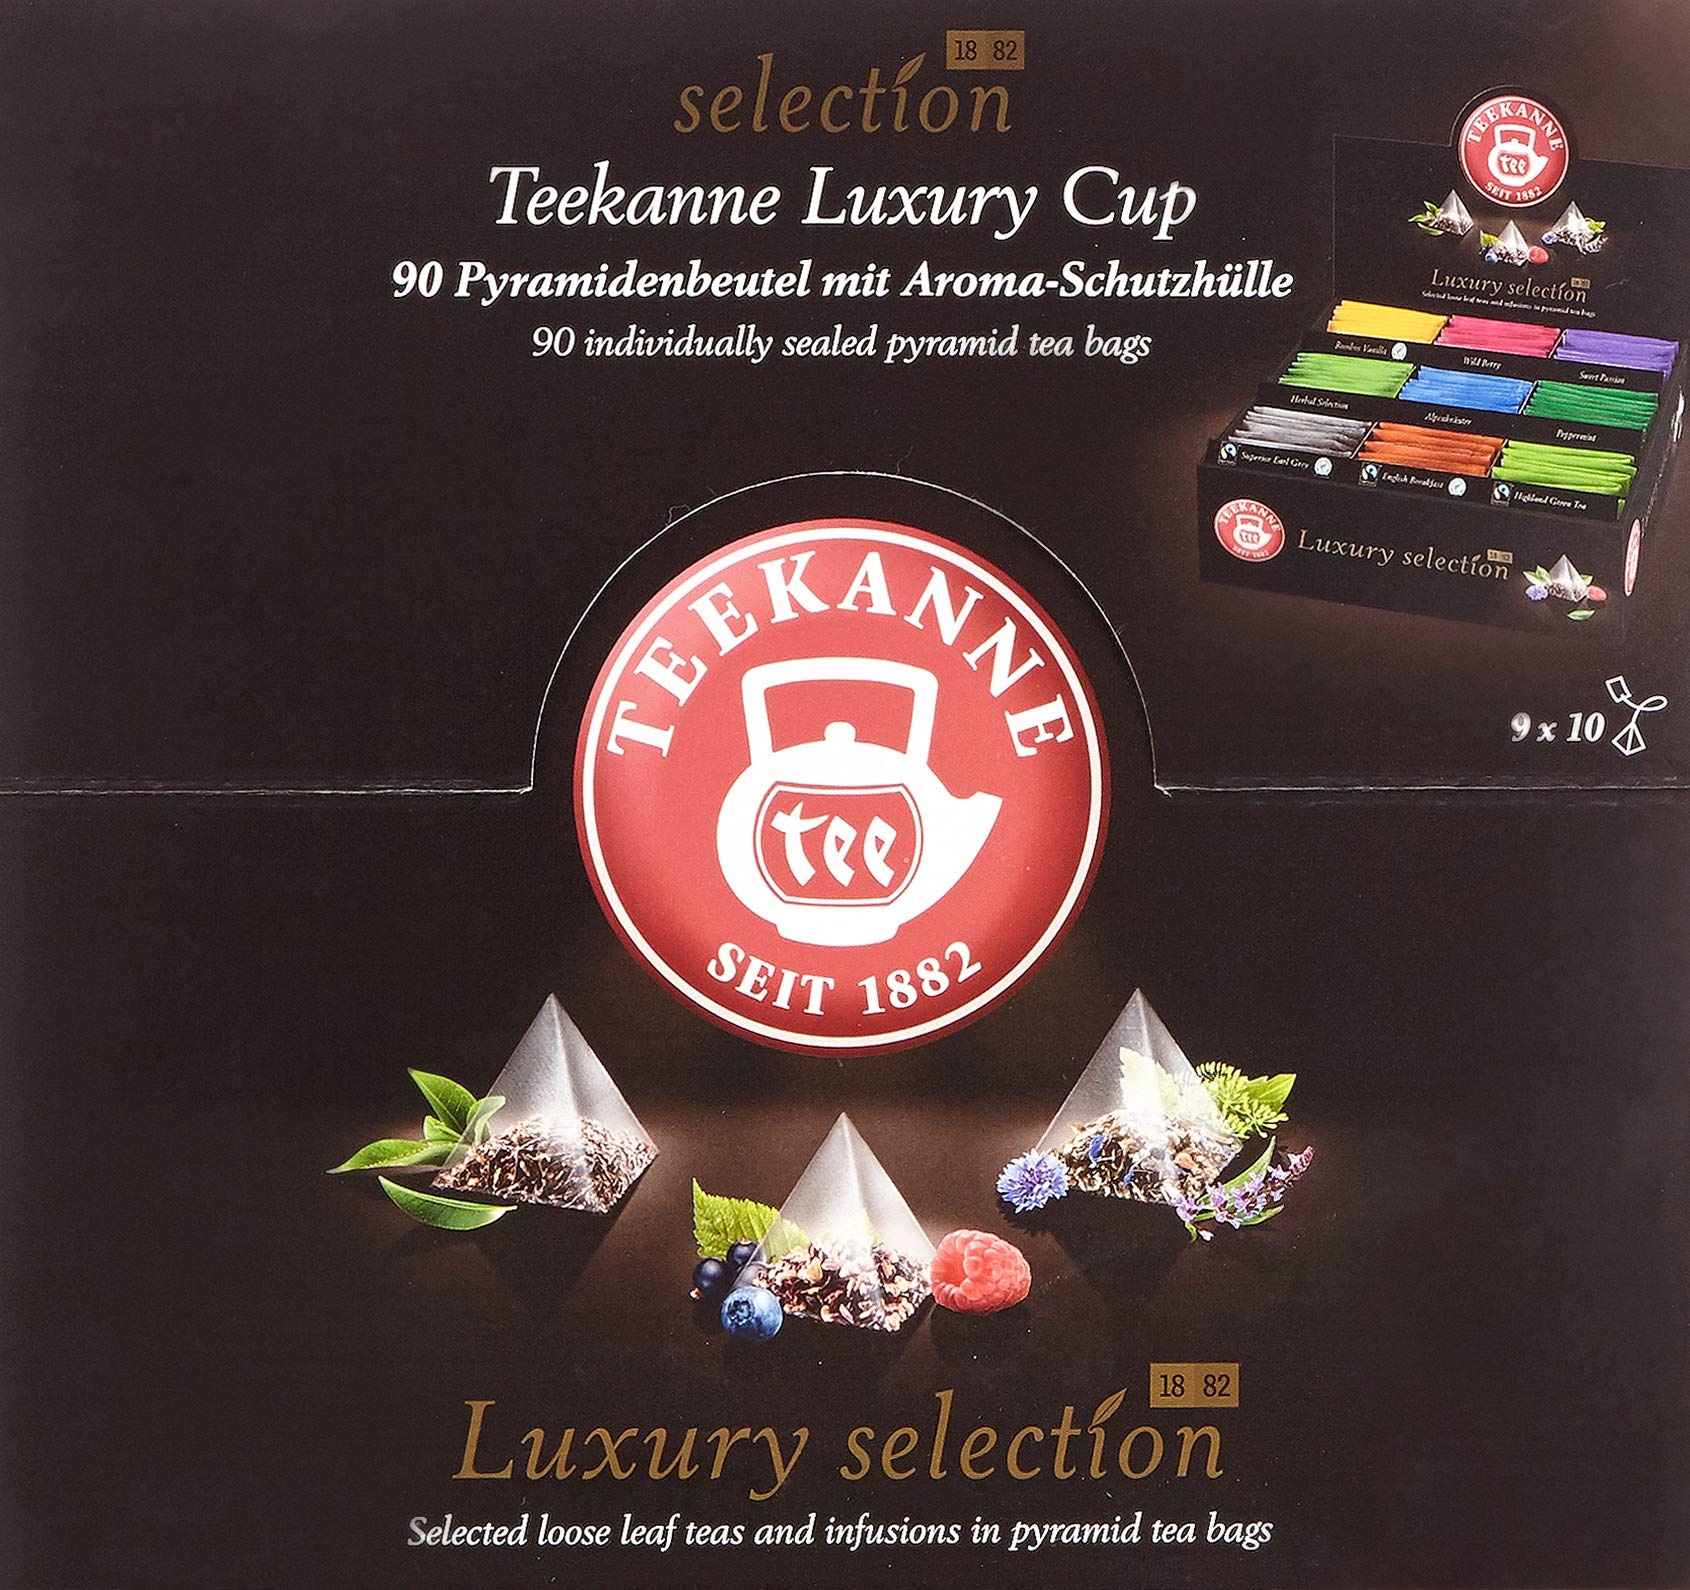 Teekanne-Luxury-Selection-Box-1er-Pack-1-x-192-g